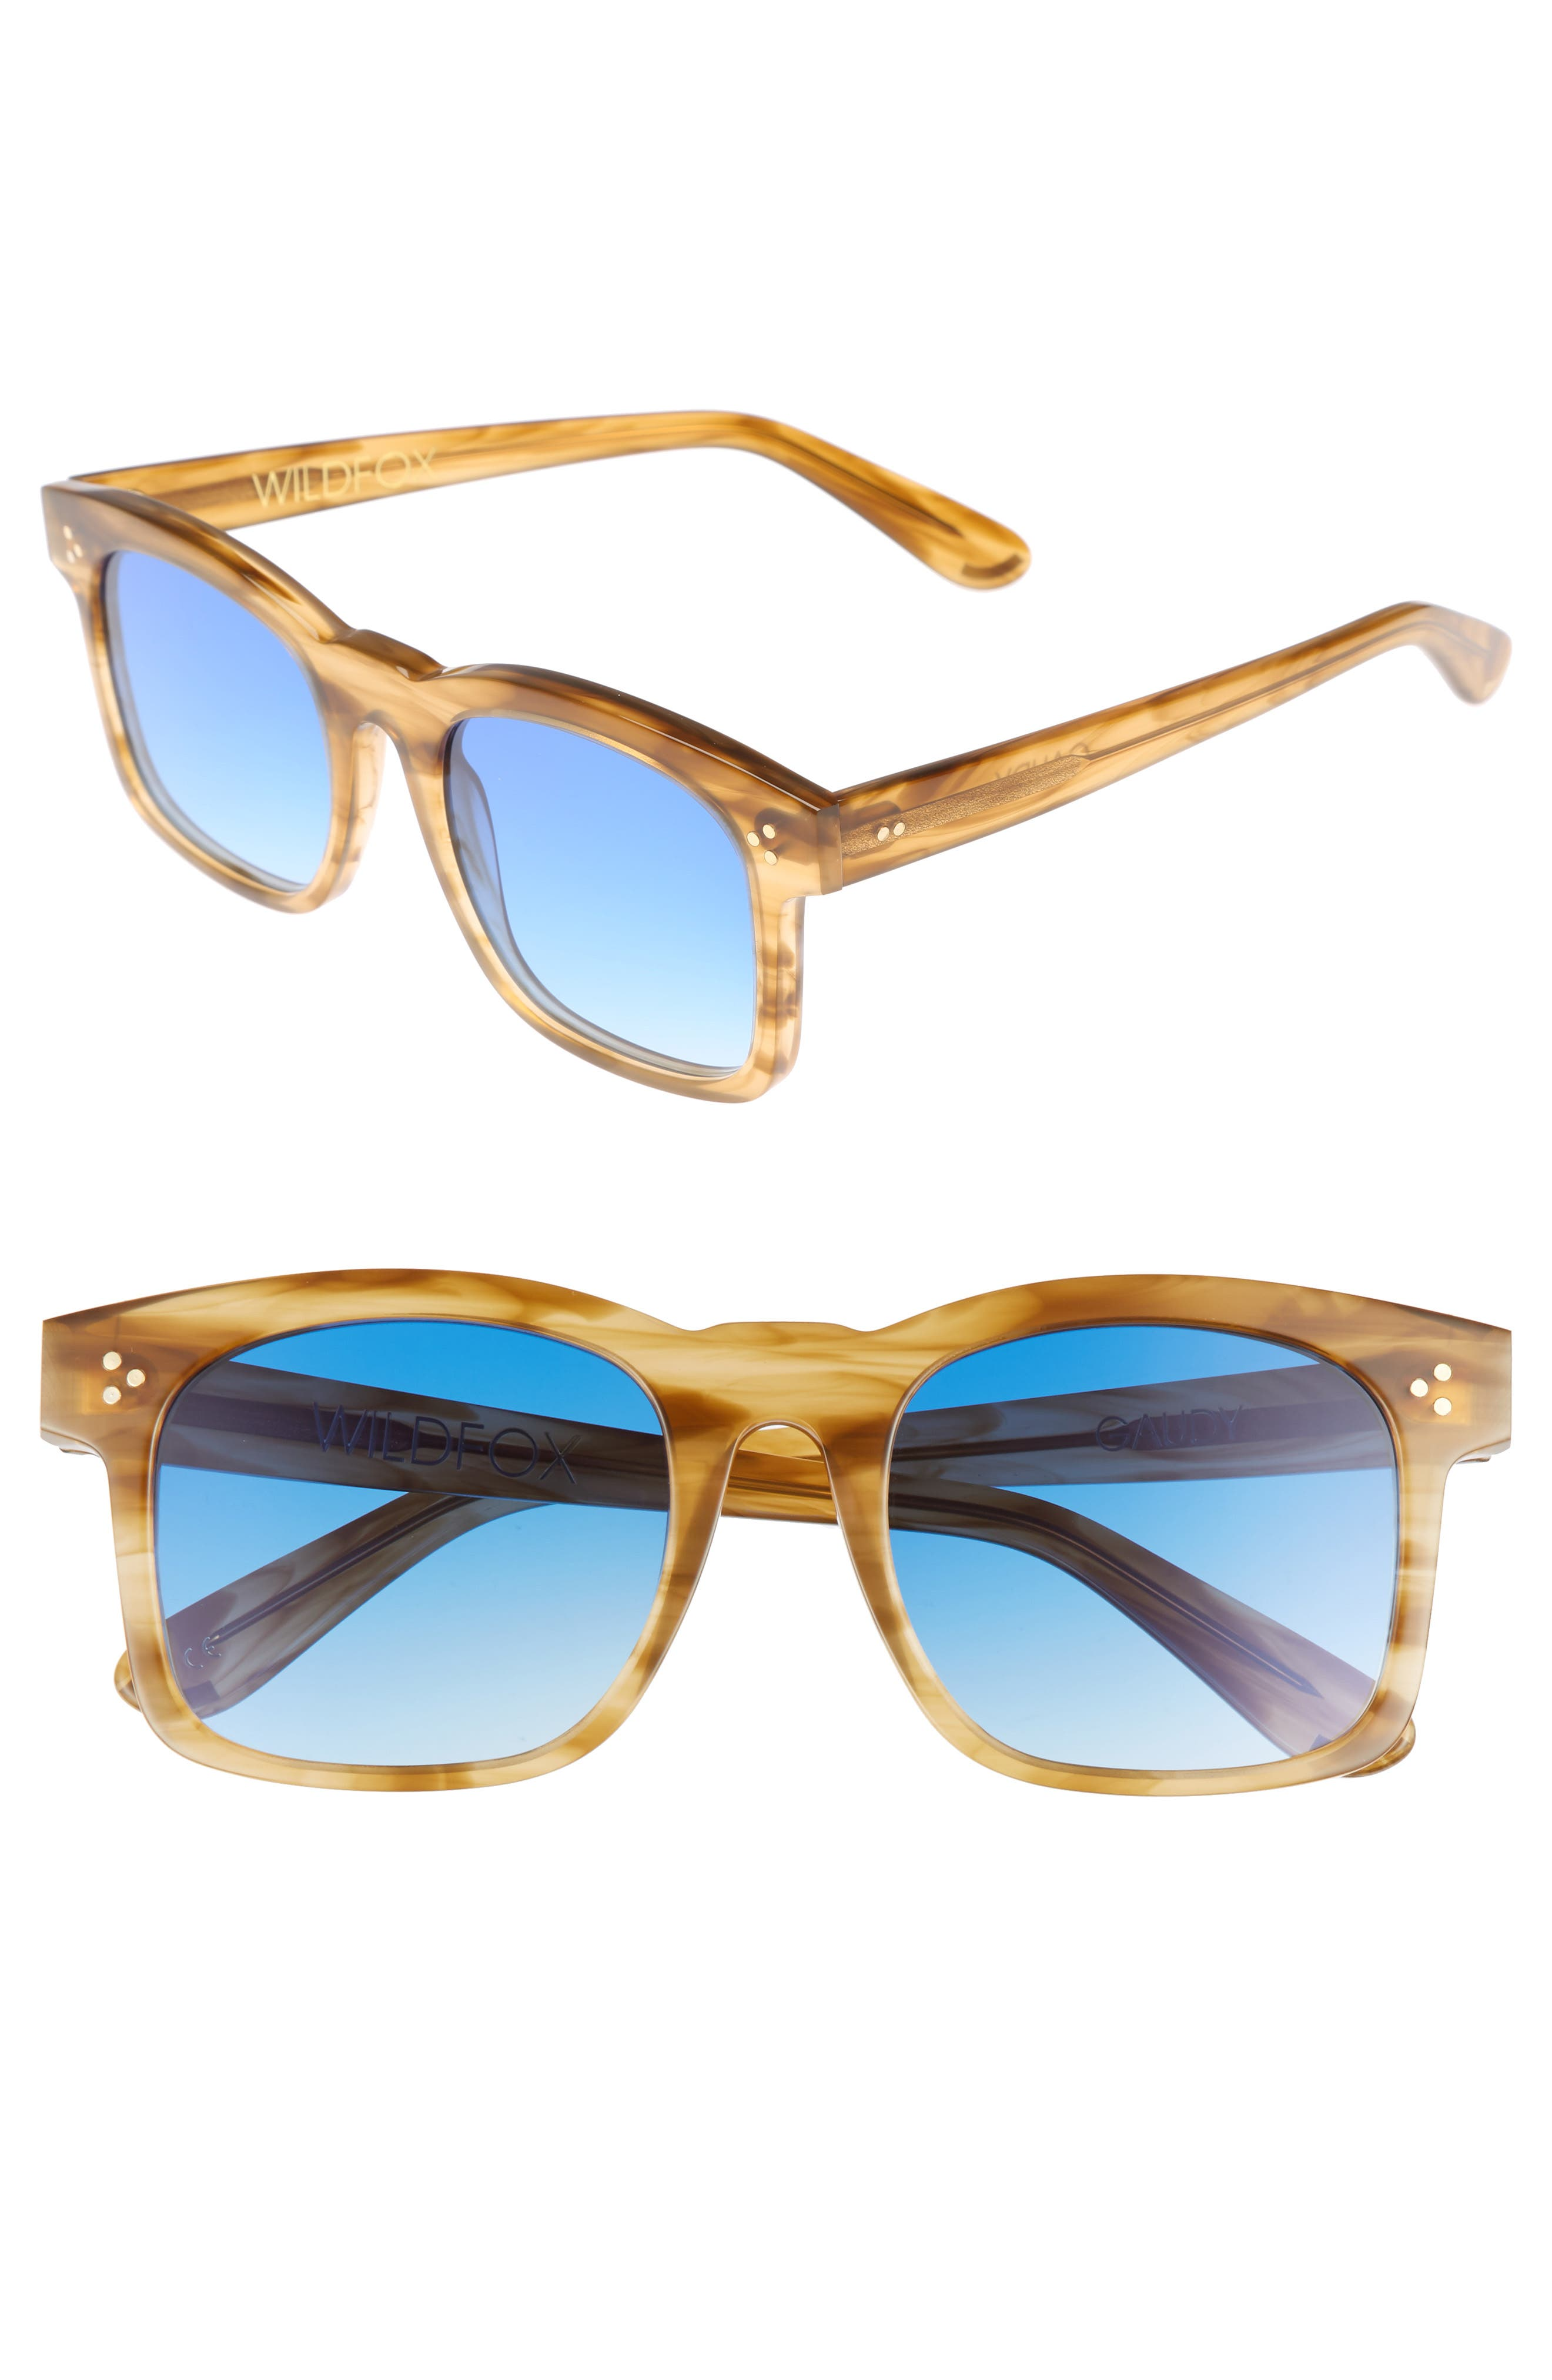 WILDFOX Gaudy Zero 51mm Flat Square Sunglasses, Main, color, SIERRA TORTOISE